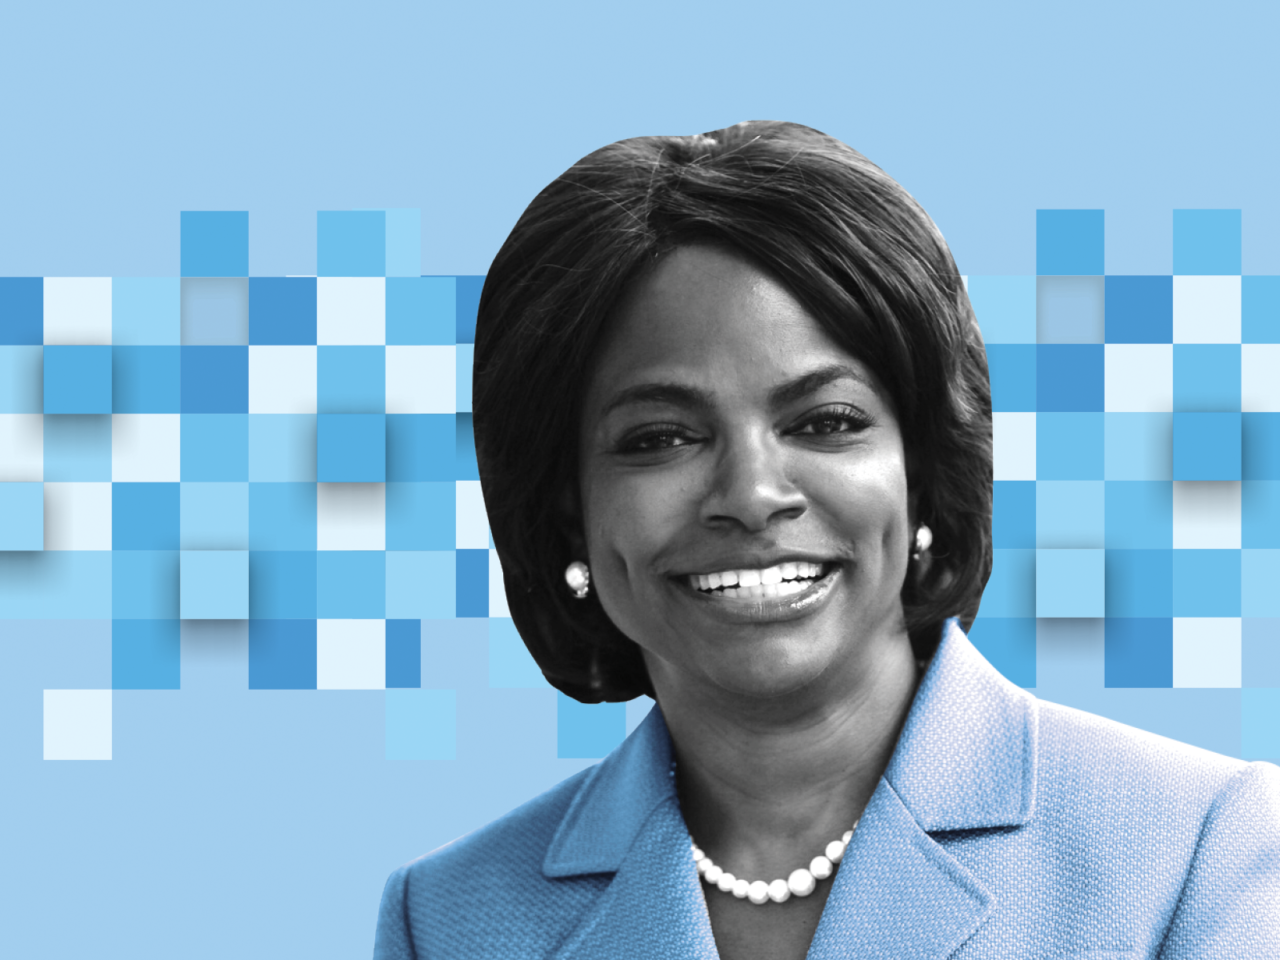 demings-val-graphic1-1280x960.png